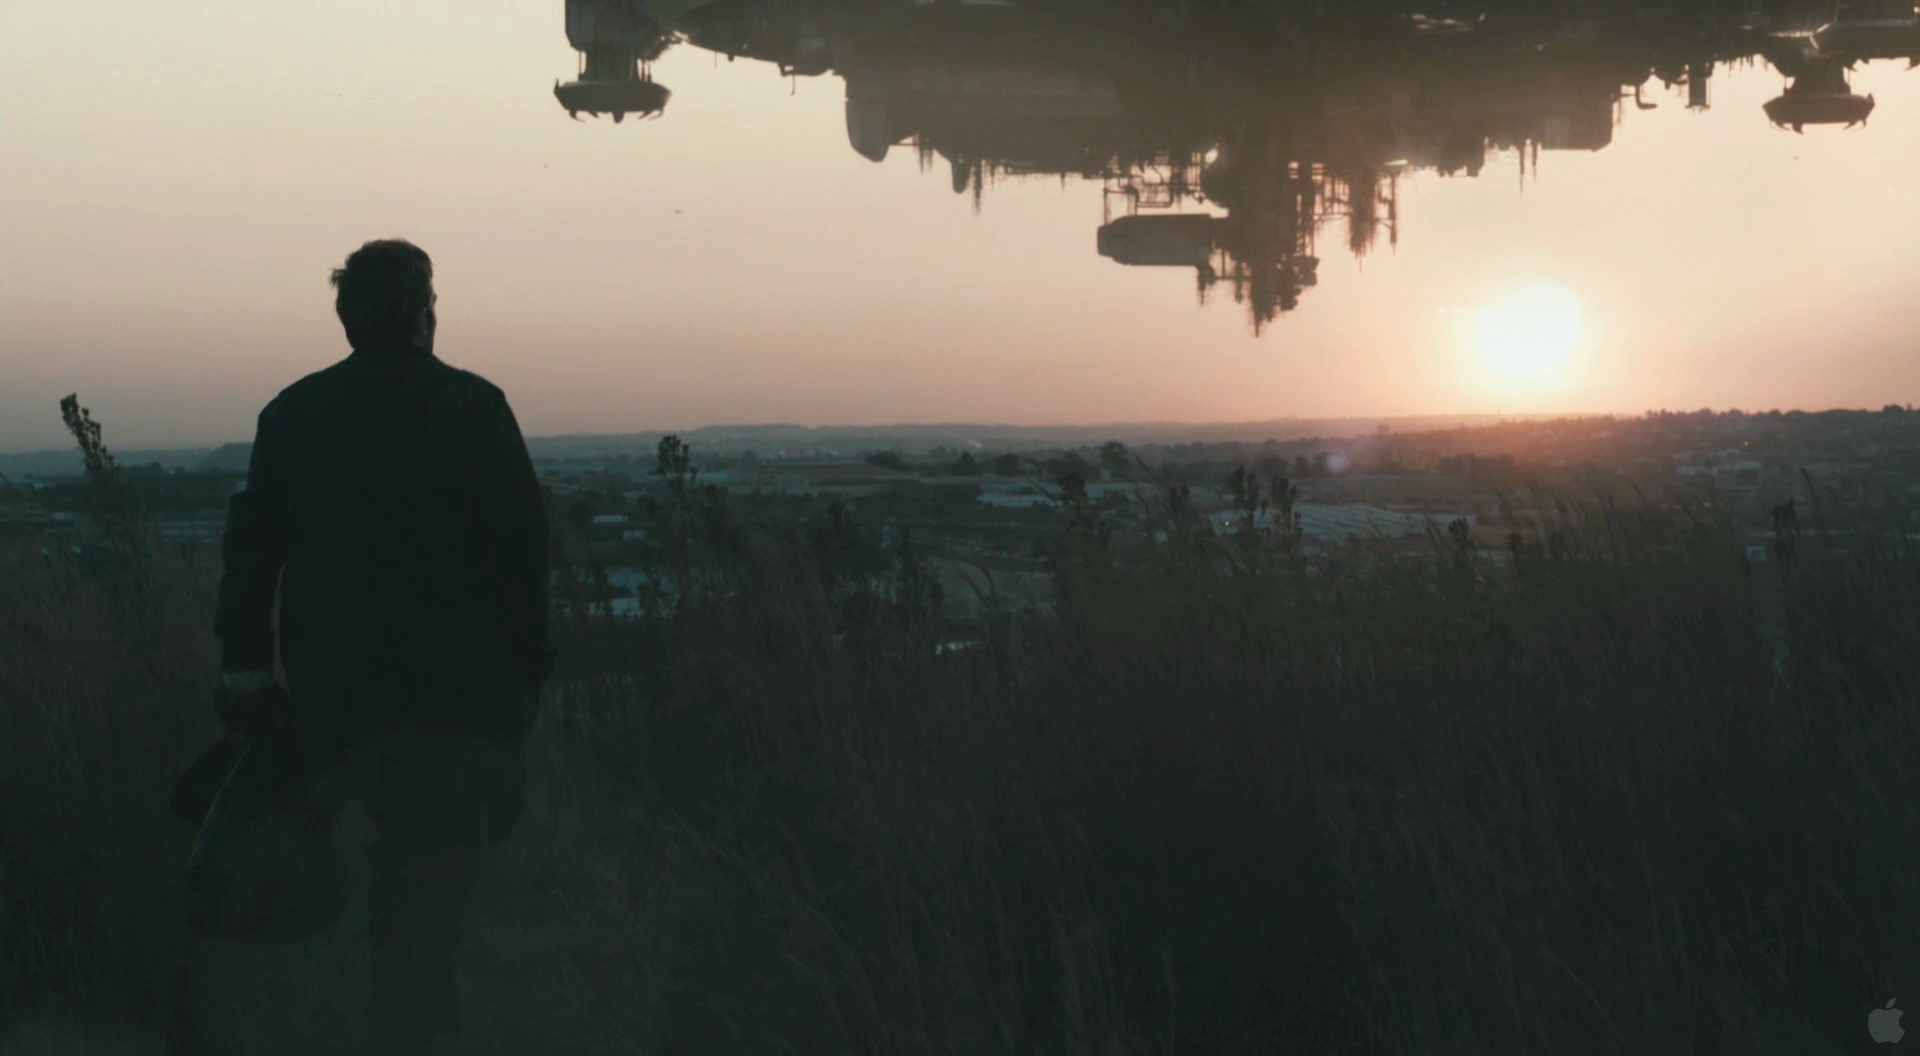 district 9 computer wallpapers - photo #2